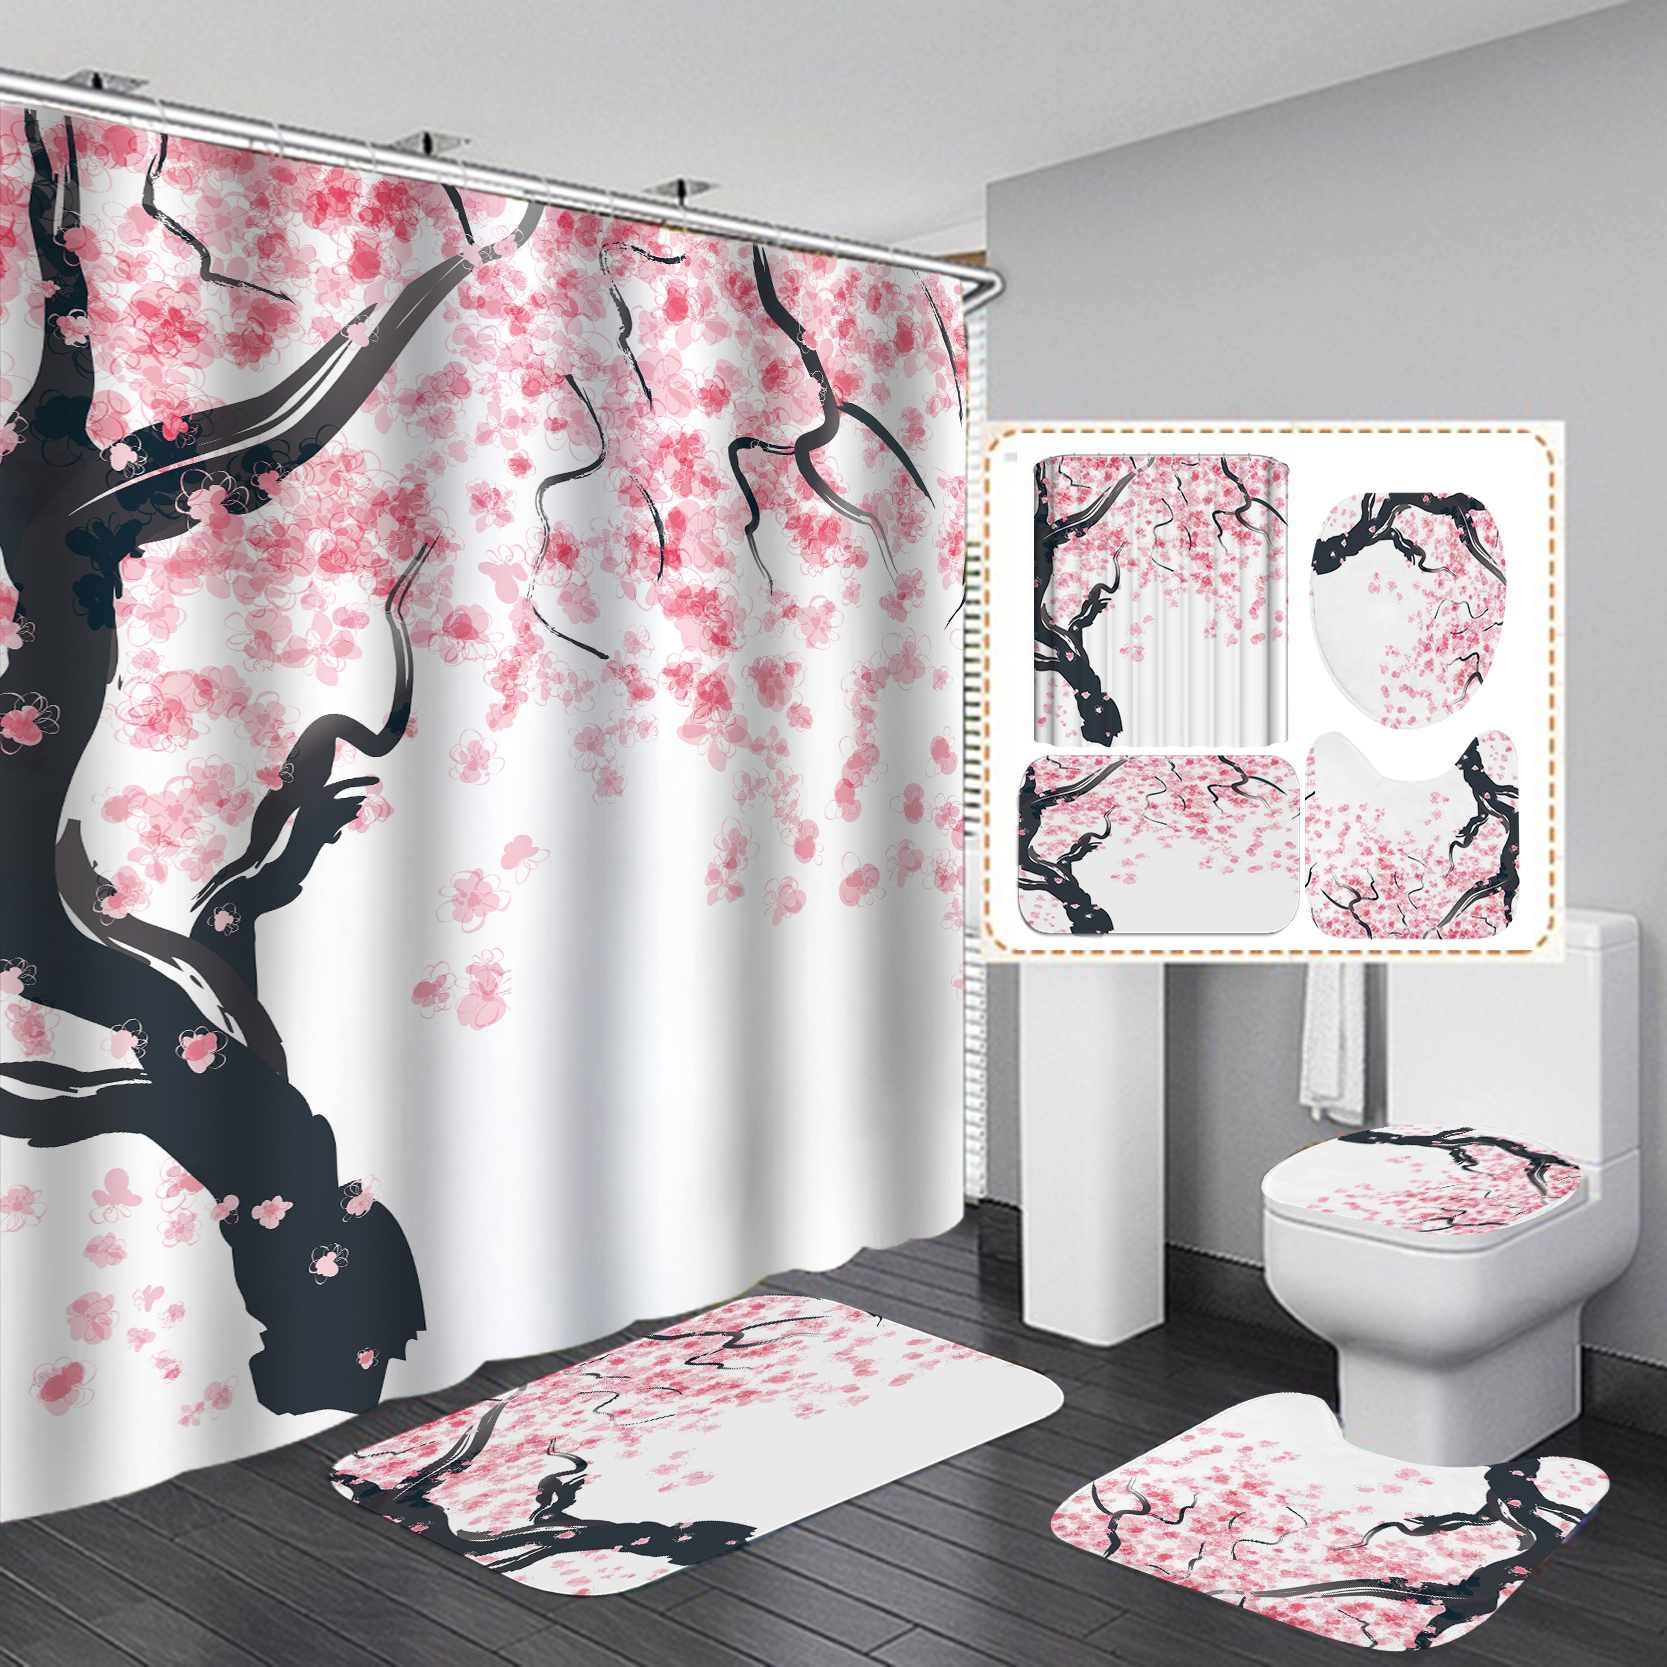 Shower Curtain Bathroom Curtains Garden Flowers Pink Peach Blossom Flower Tree Pure White Background Cloth Fabric Decor Shower Curtains Aliexpress